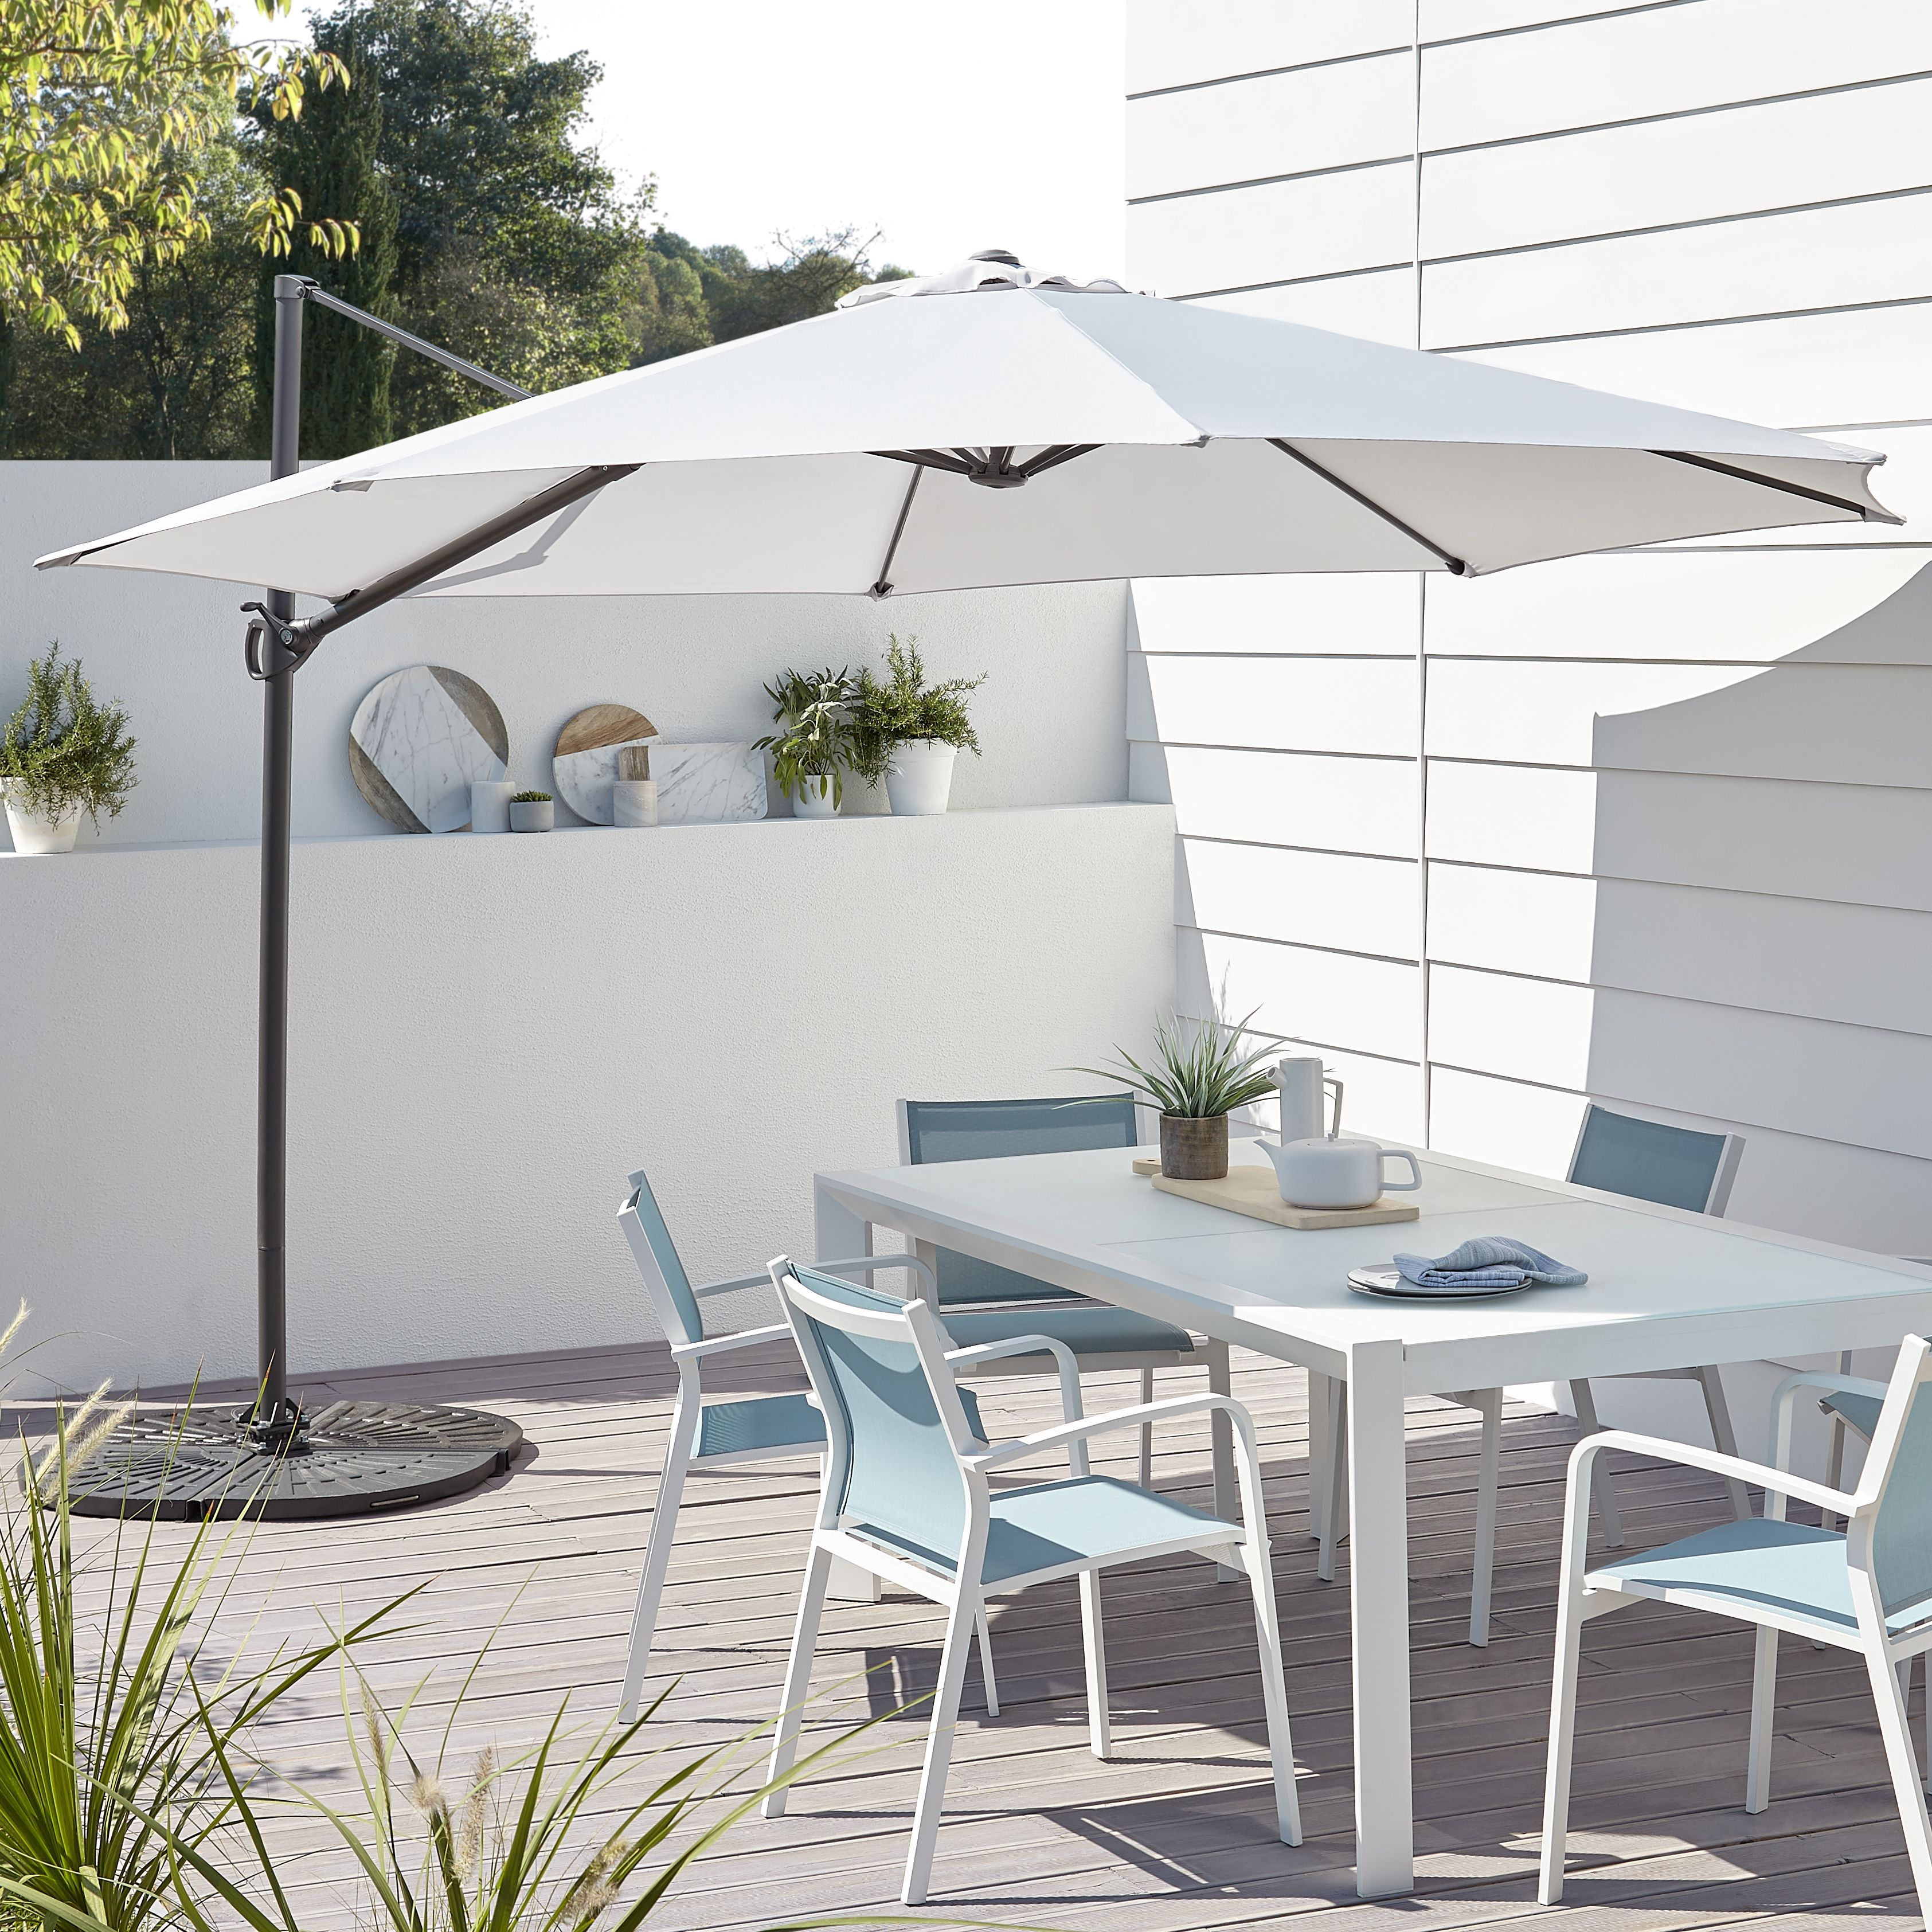 Spring Projects Diy At B Q - B And Q Garden Furniture Clearance Sale